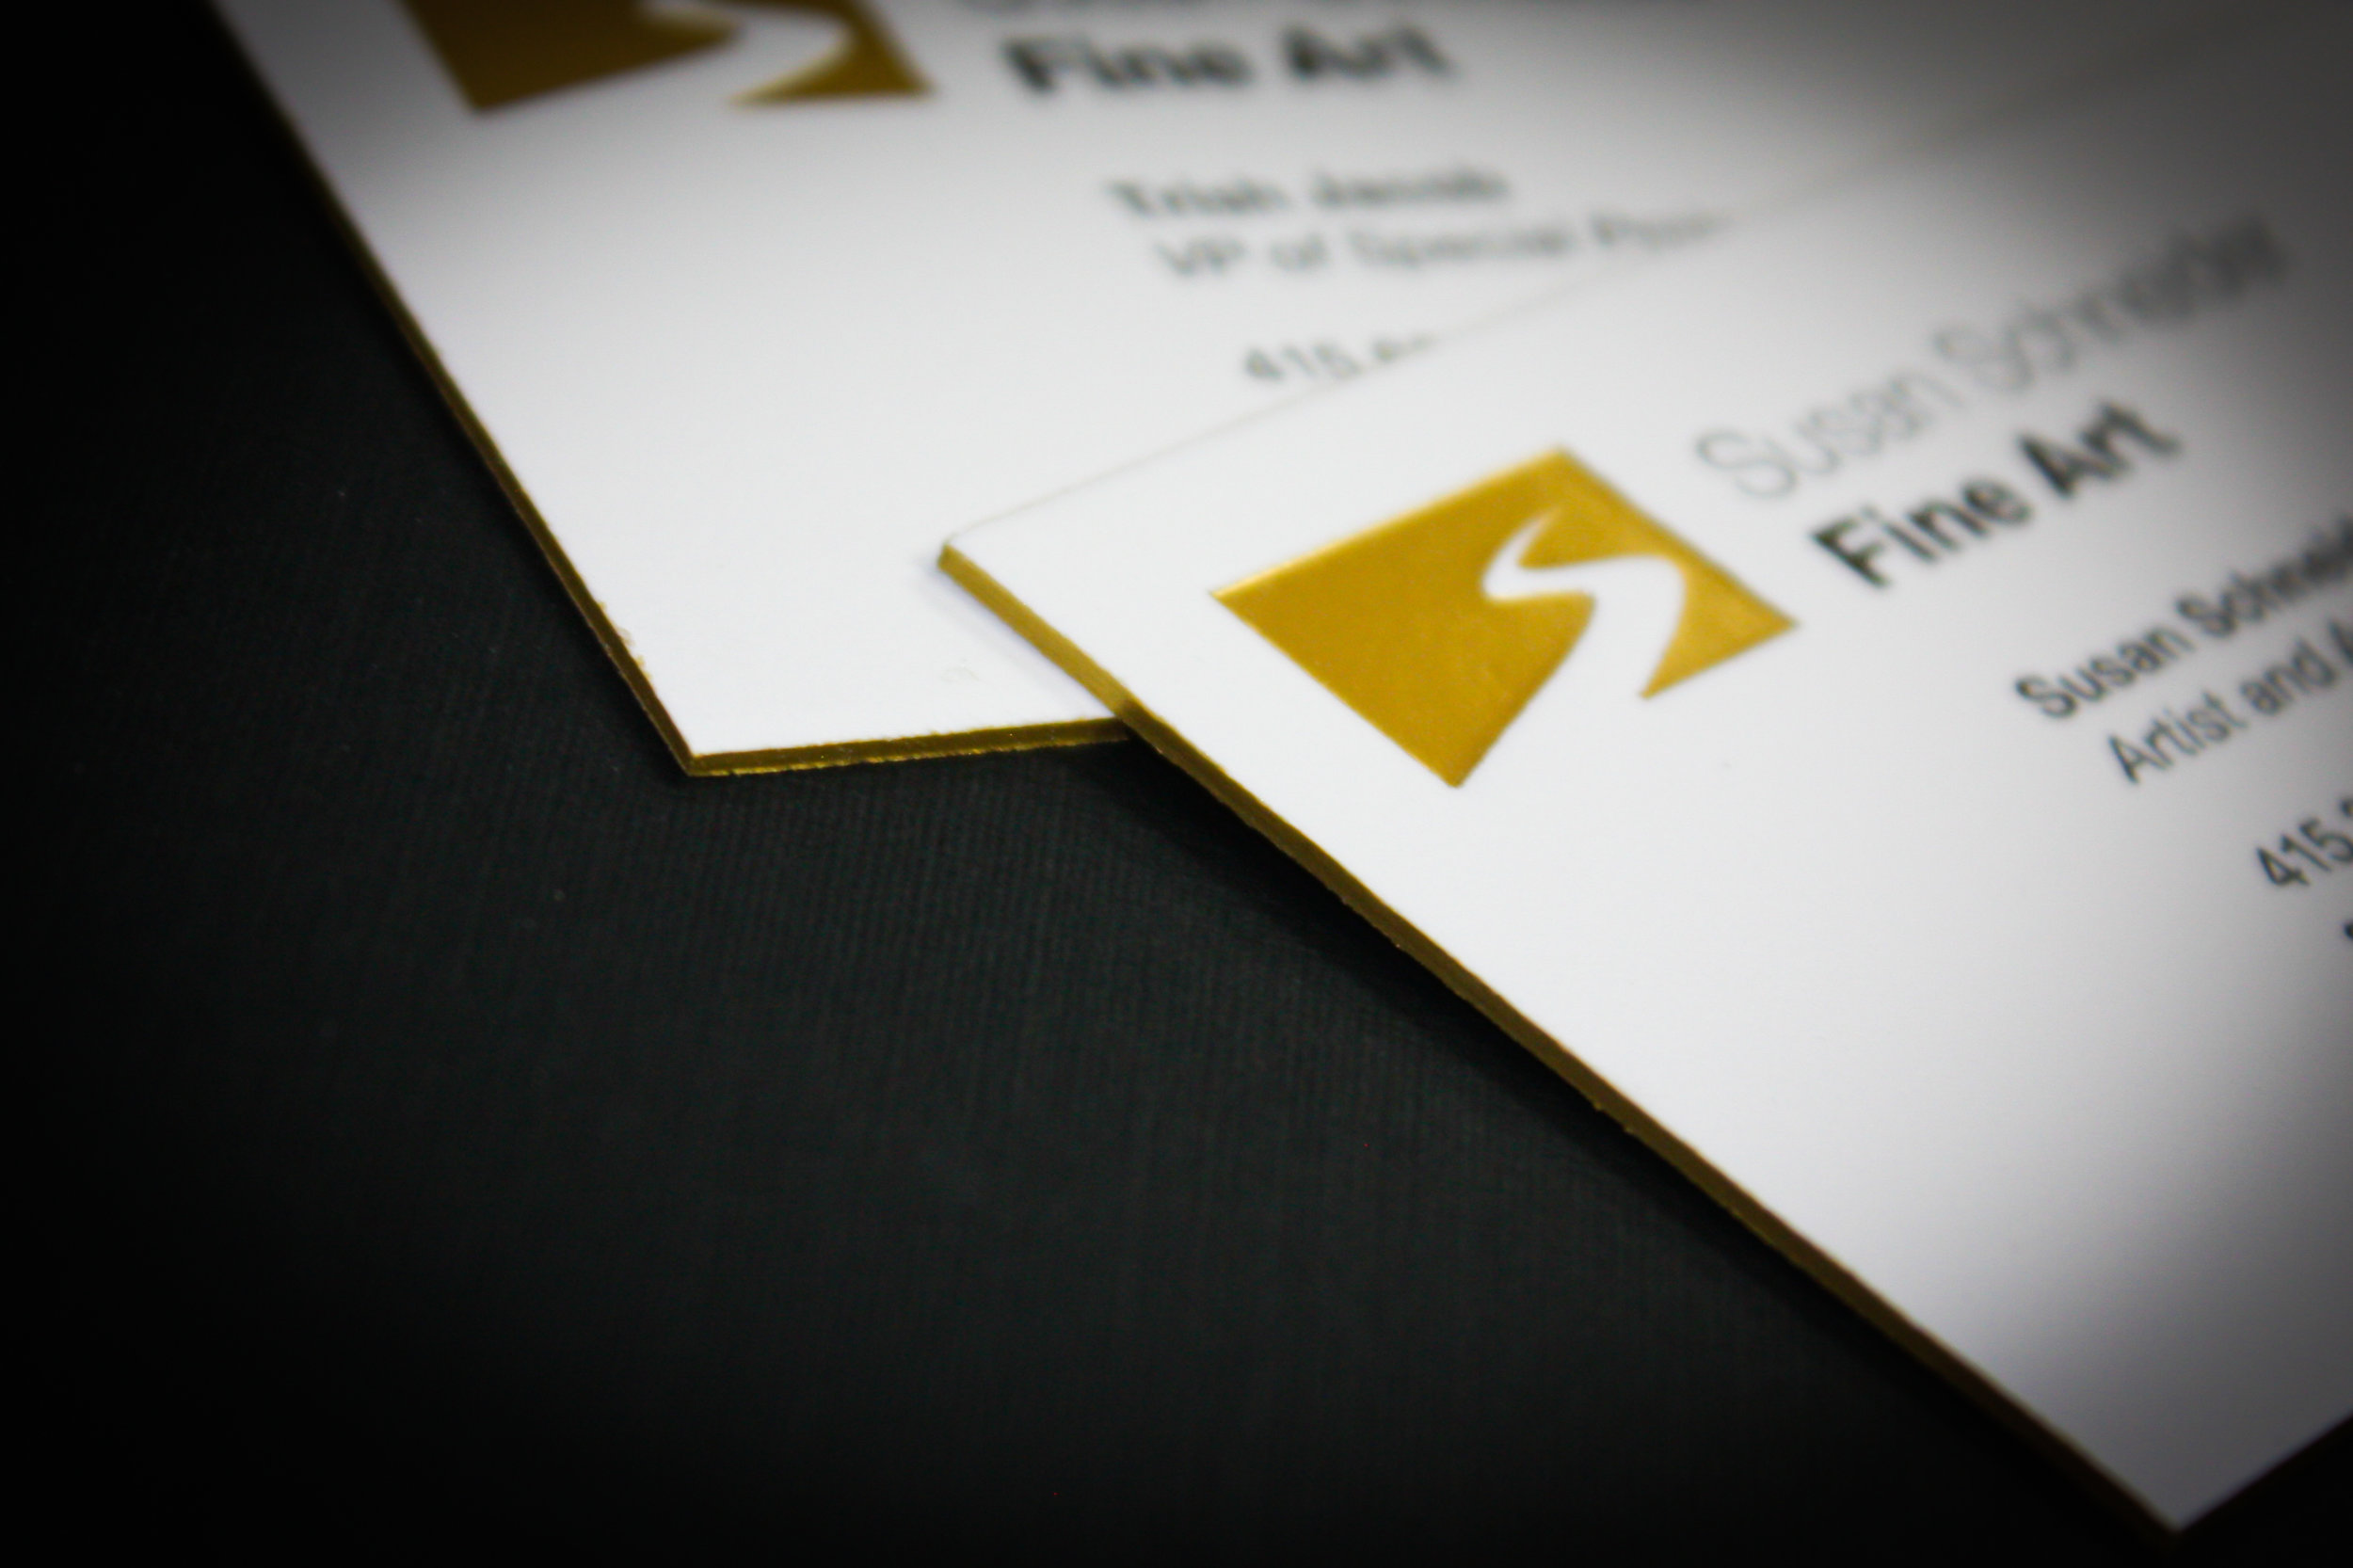 Business Cards Client:  Susan Schneider Fine Art  Gold foil and letterpress printed business cards with custom gold painted edges.